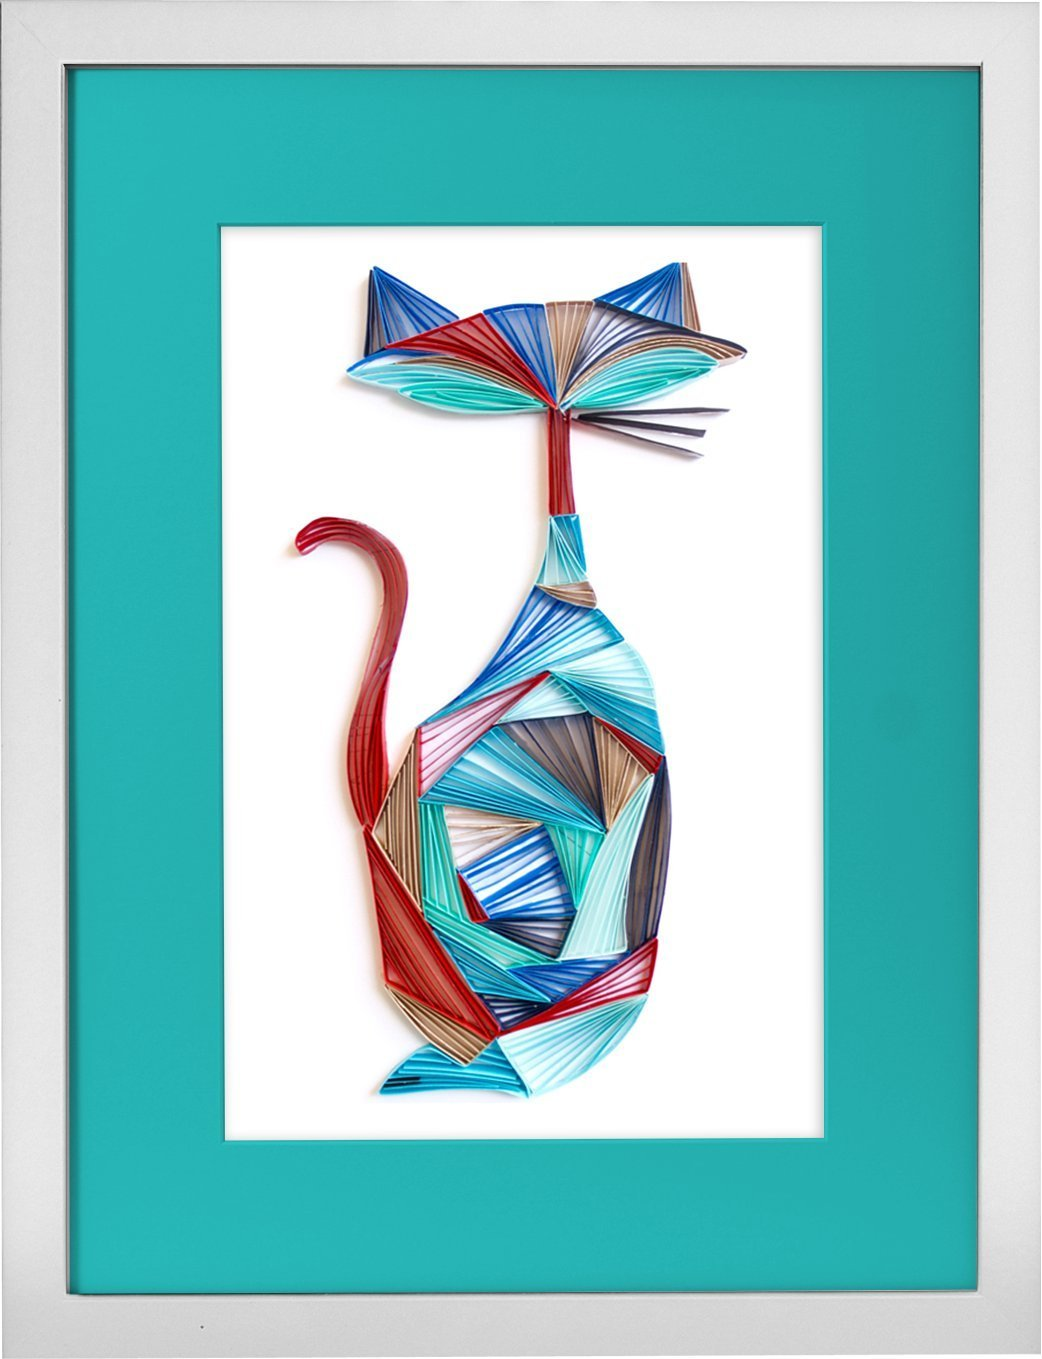 The Cool Cat - Modern Paper Quilled Wall Art for Home Decor (one of a kind paper quilling handcrafted piece made with love by an artist in California)